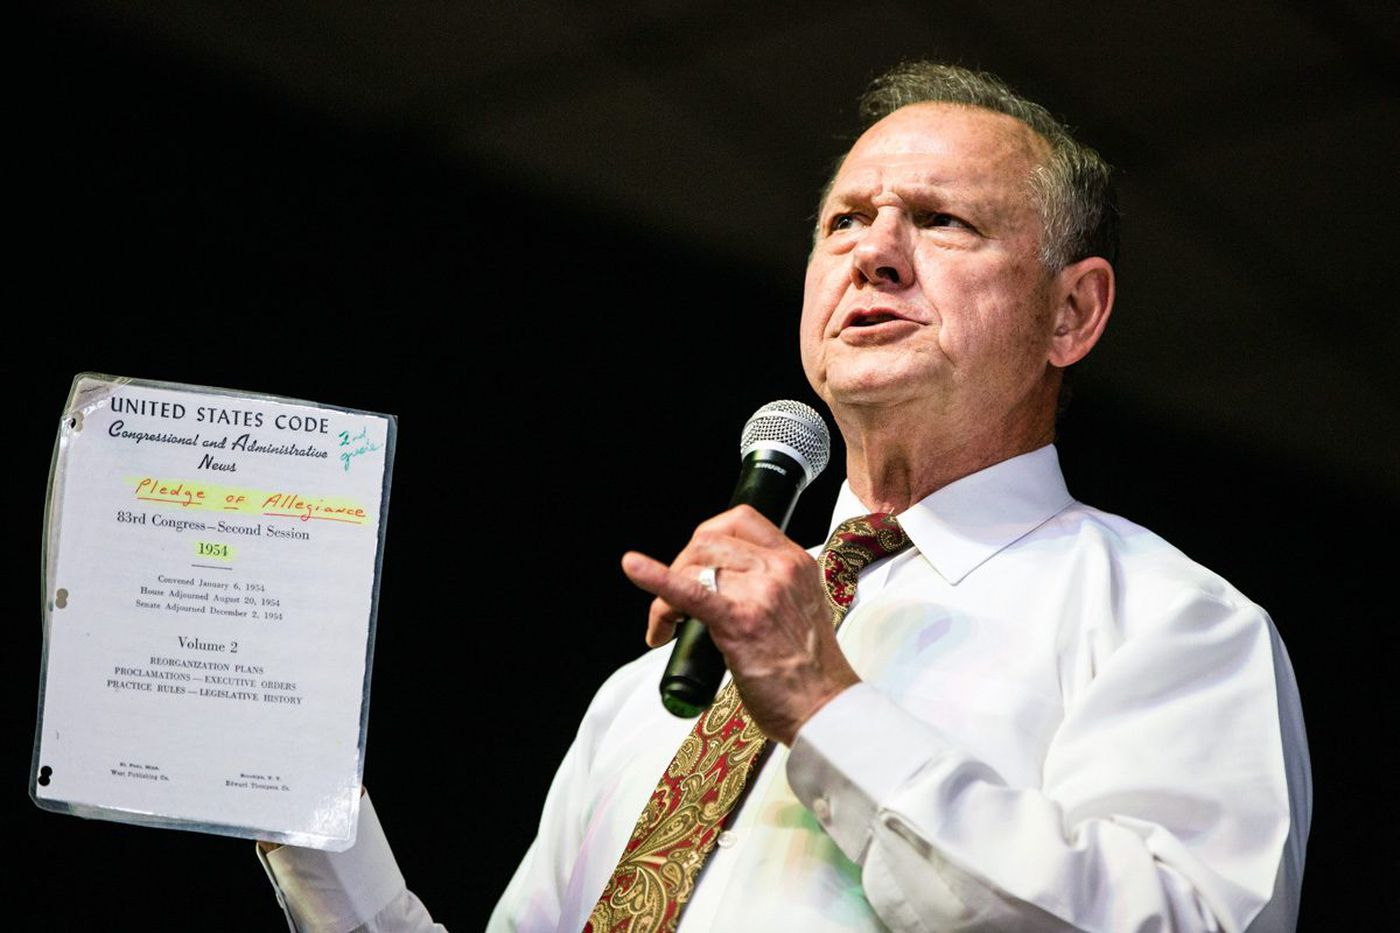 Moore denies sexual misconduct, does not rule out that he may have dated teen girls when he was in his 30s